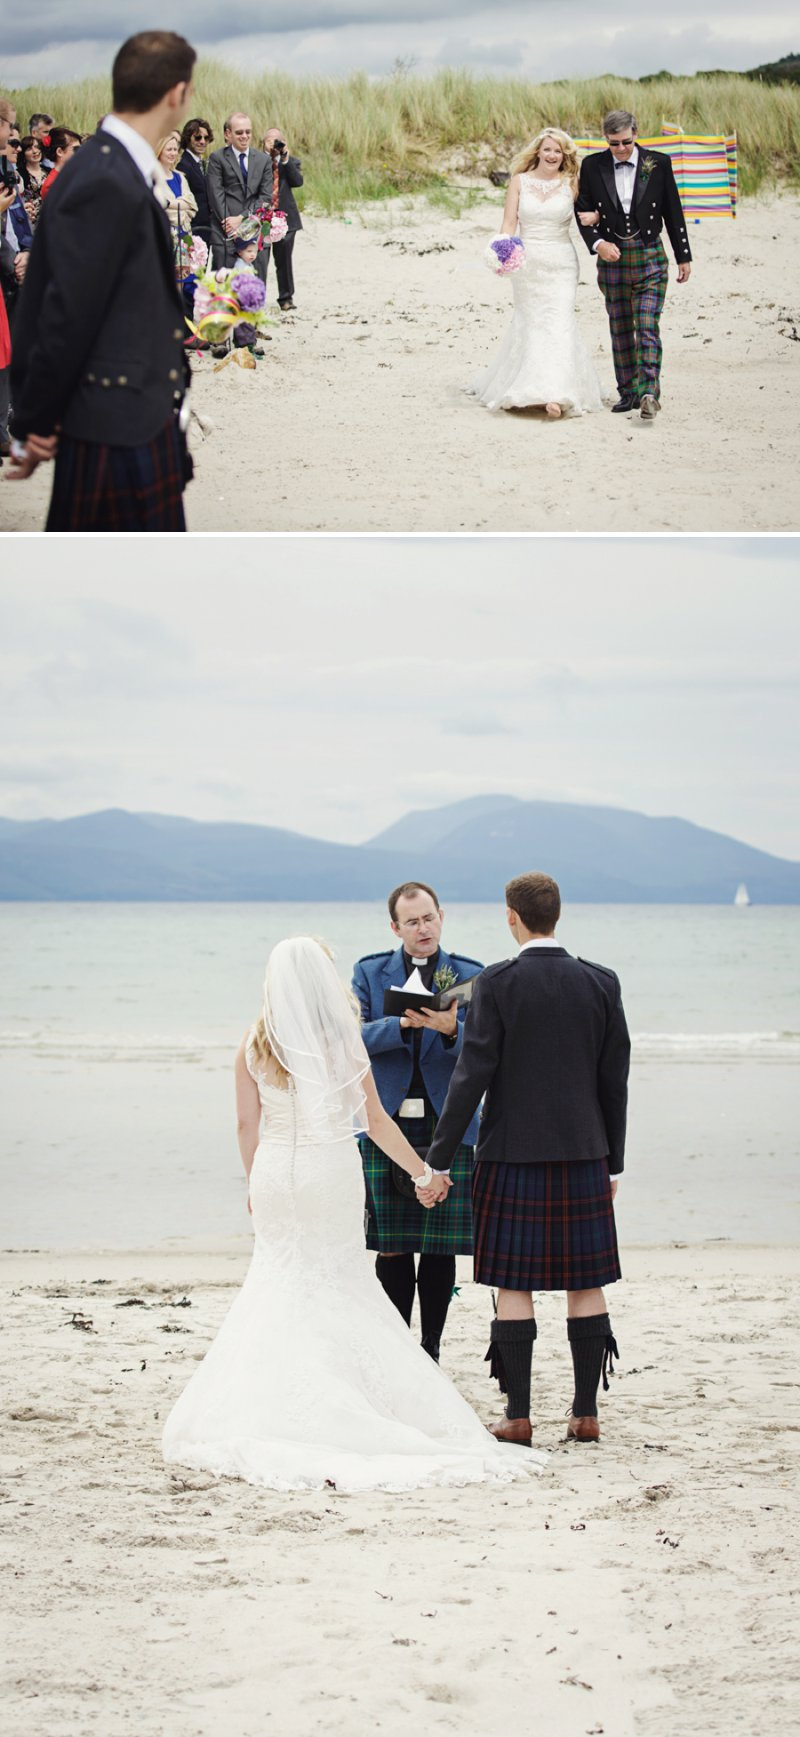 Rustic Scottish Beach Wedding With Bride In Justin Alexander And Vivien Of Holloway And Groom In Kilt With Bridesmaids In 50s Style Gowns With A Traditional Scottish Ceilidh 4